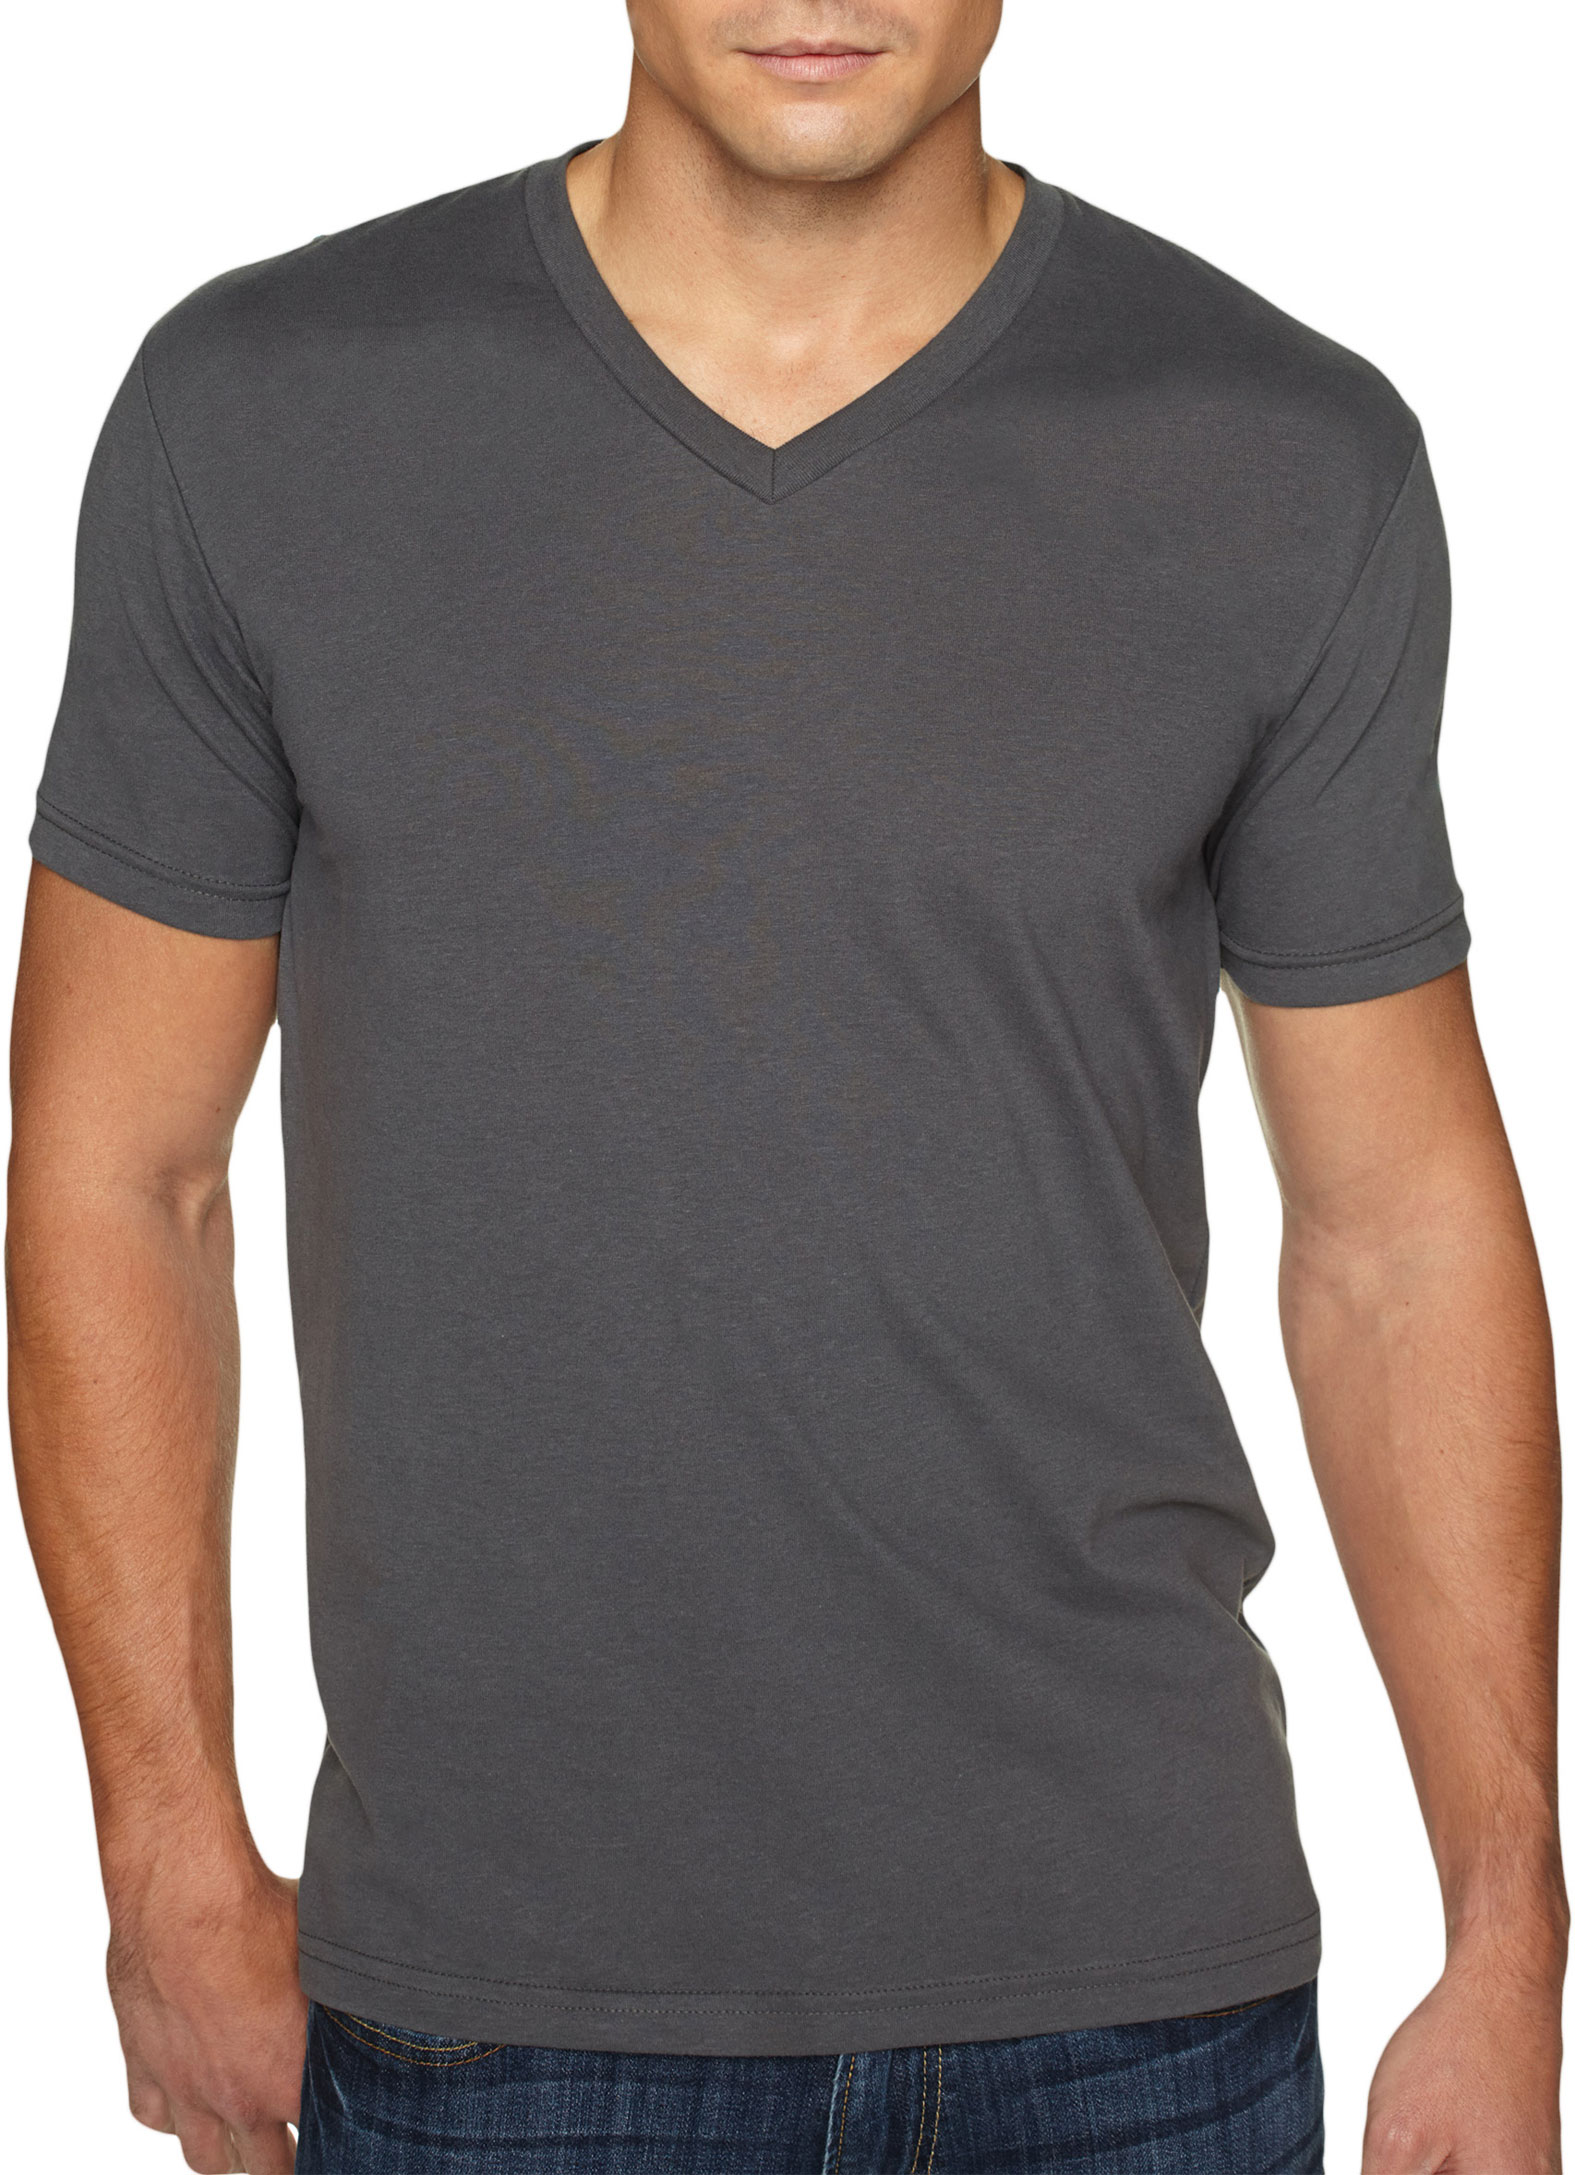 Next Level Premium Sueded V-neck T-Shirt